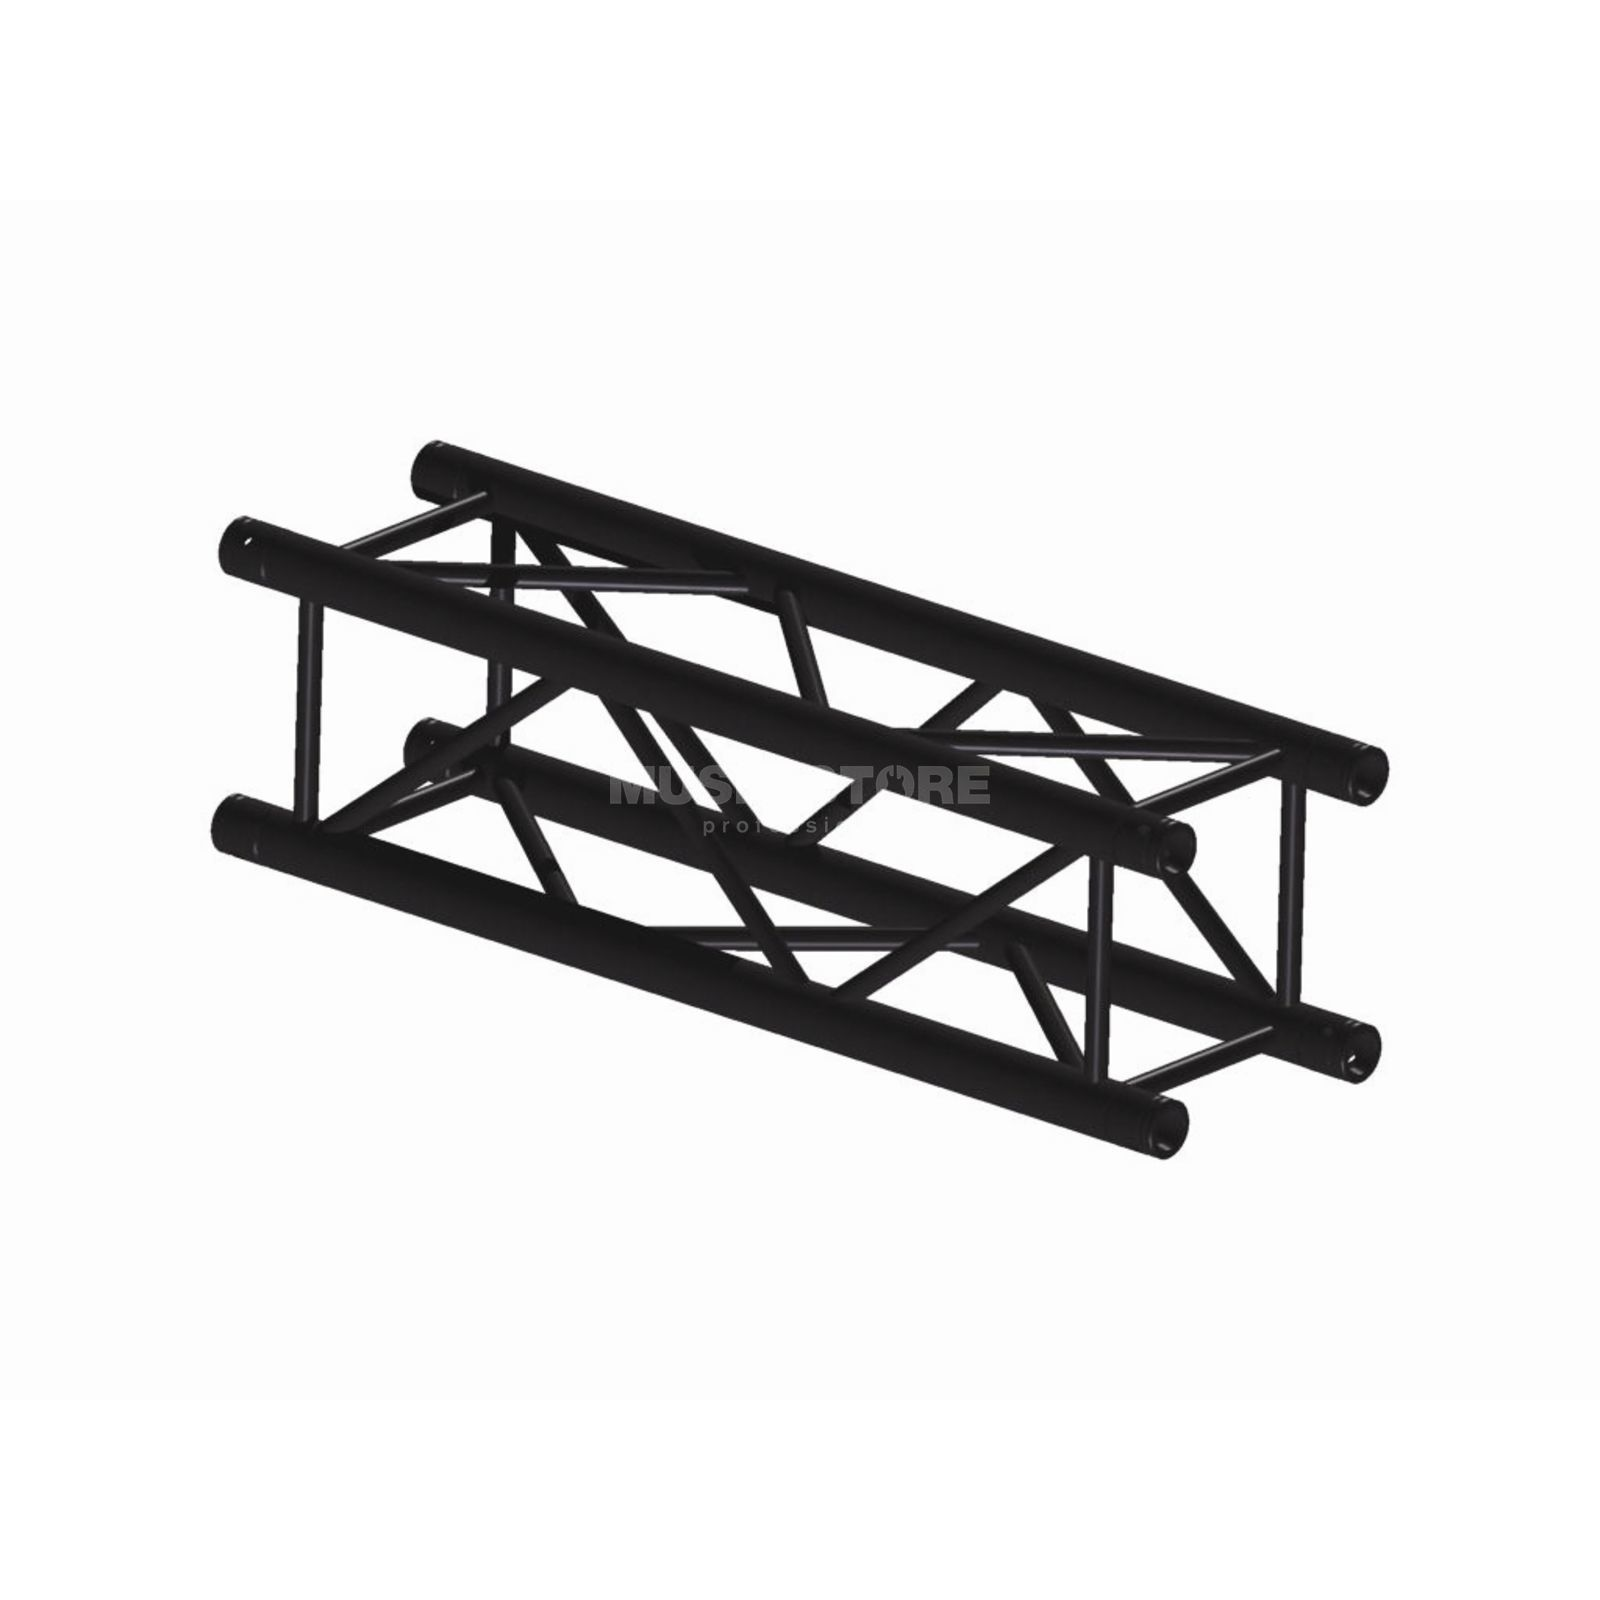 Global Truss F34P,200cm,4-Punkt Truss,black 3mm Изображение товара